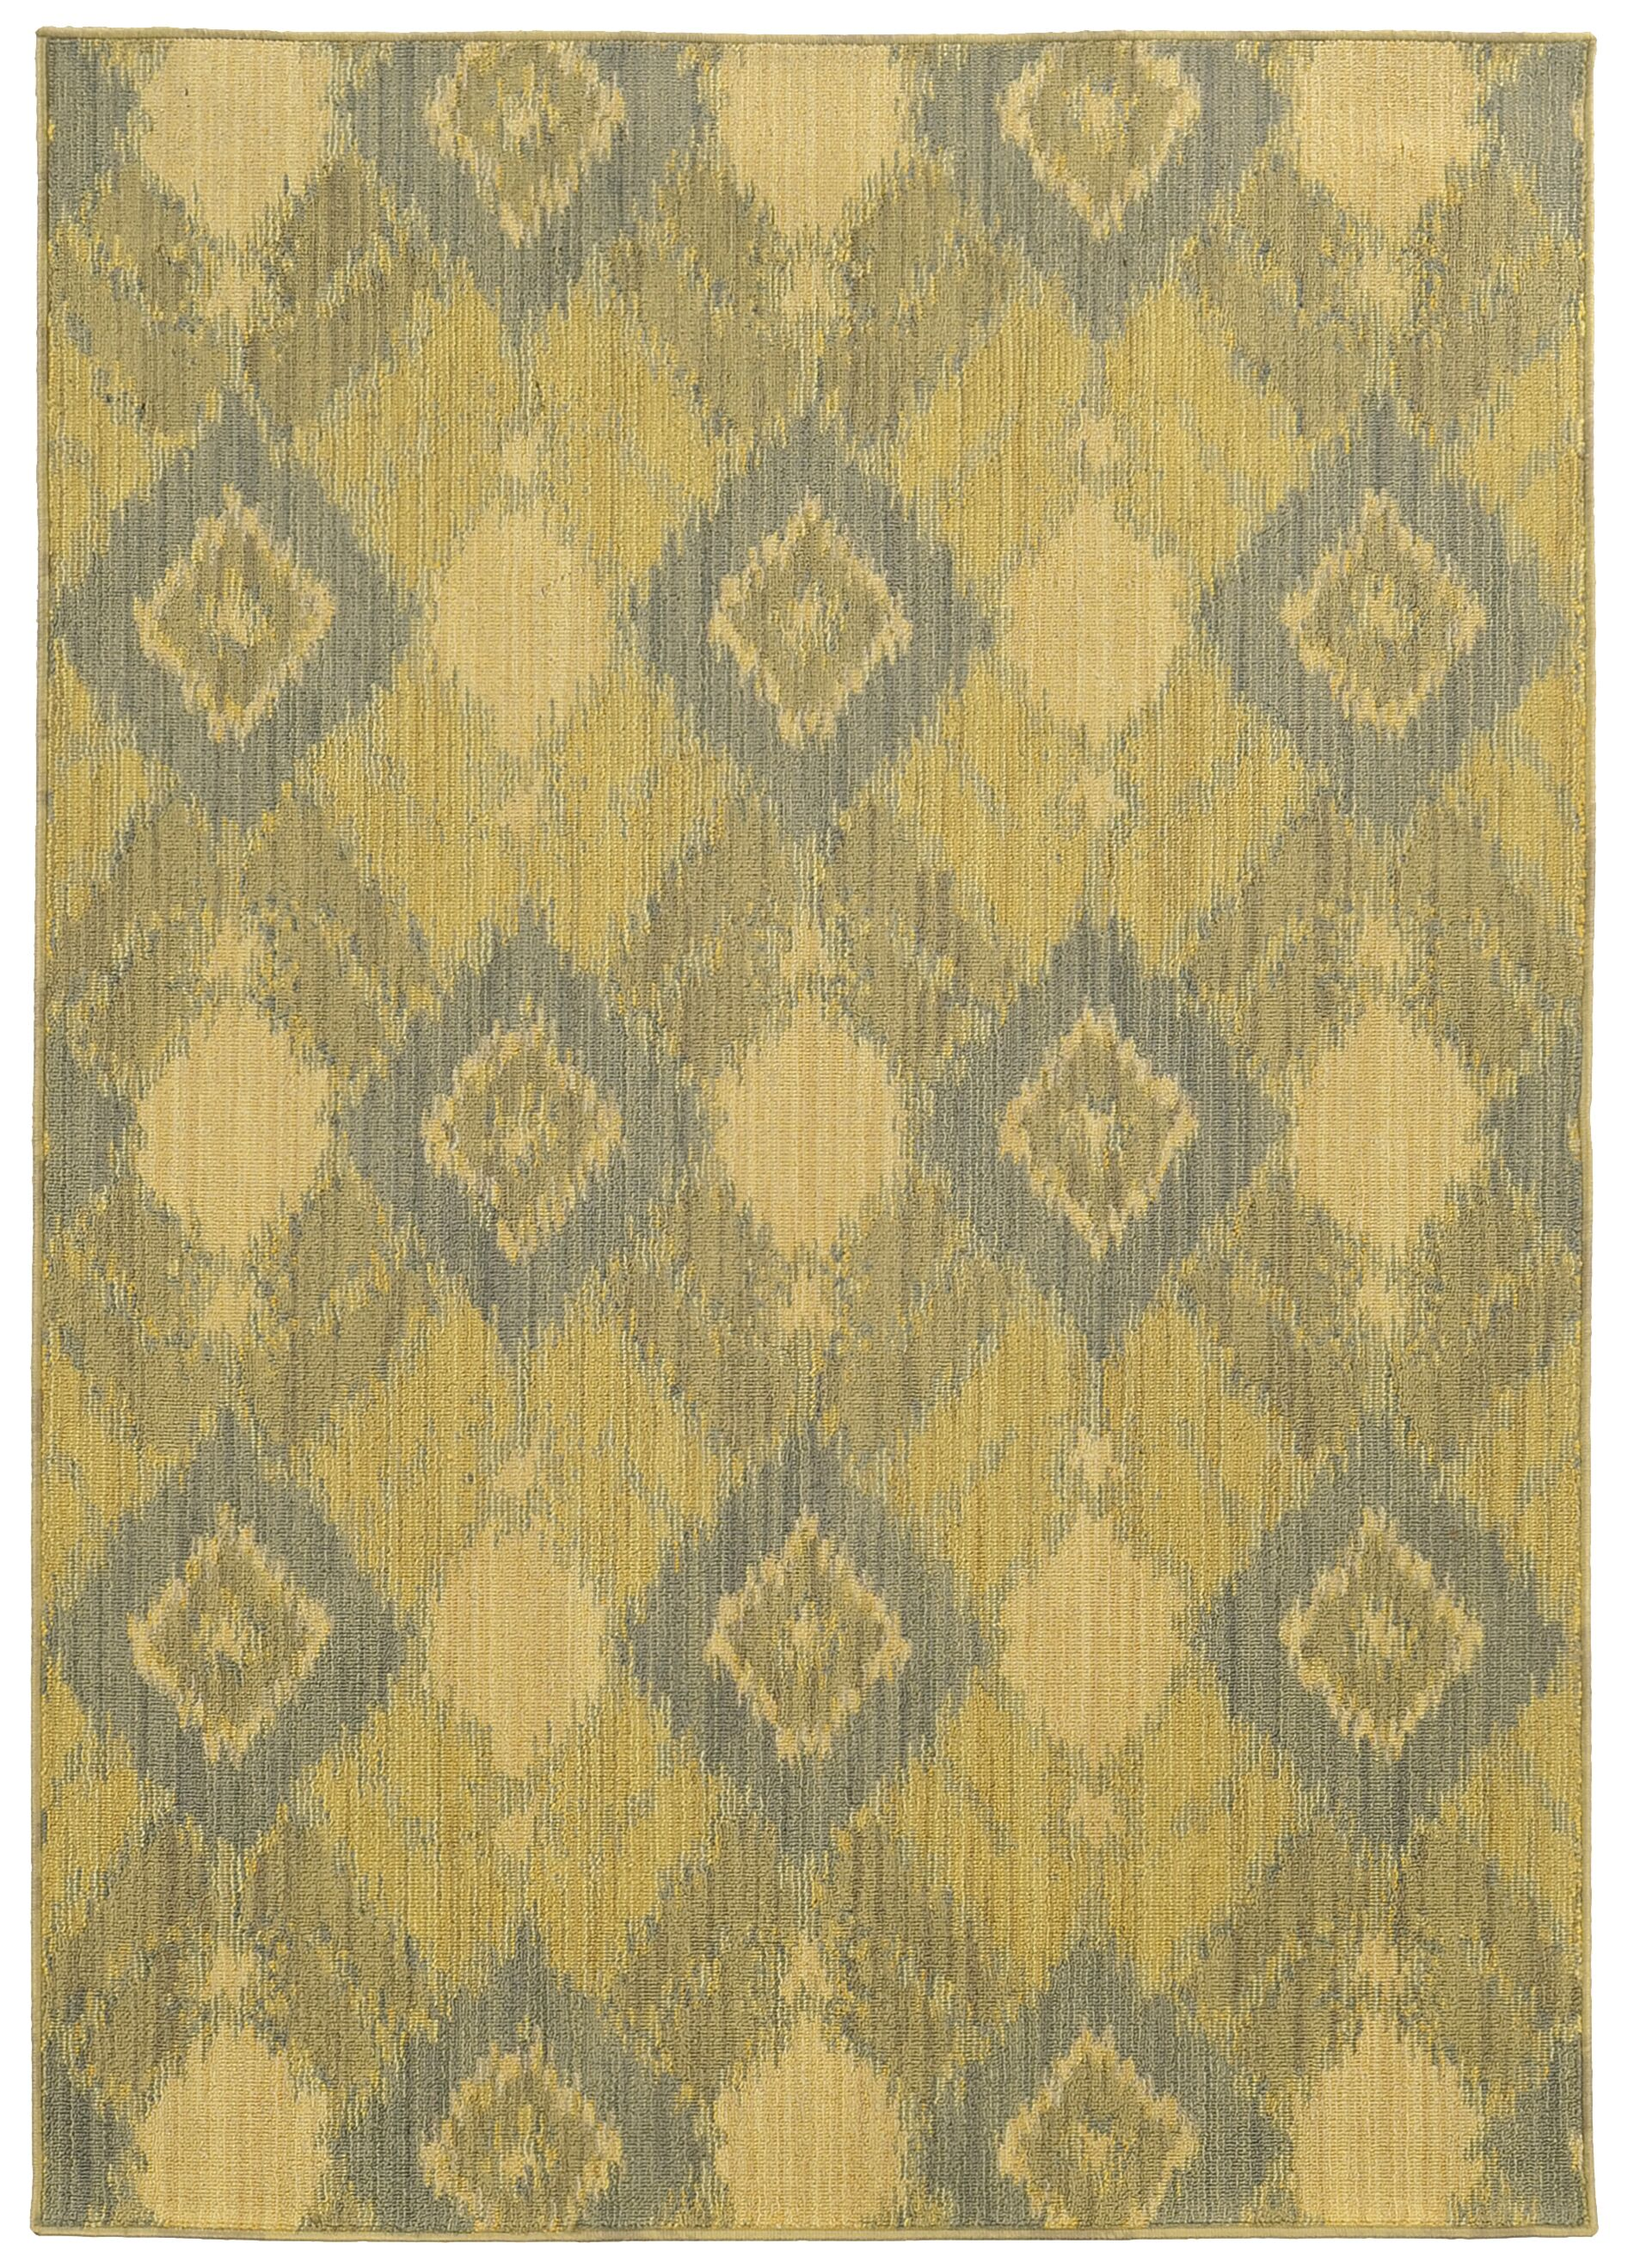 Tommy Bahama Cabana Green / Blue Geometric Indoor/Outdoor Area Rug Rug Size: Rectangle 3'10